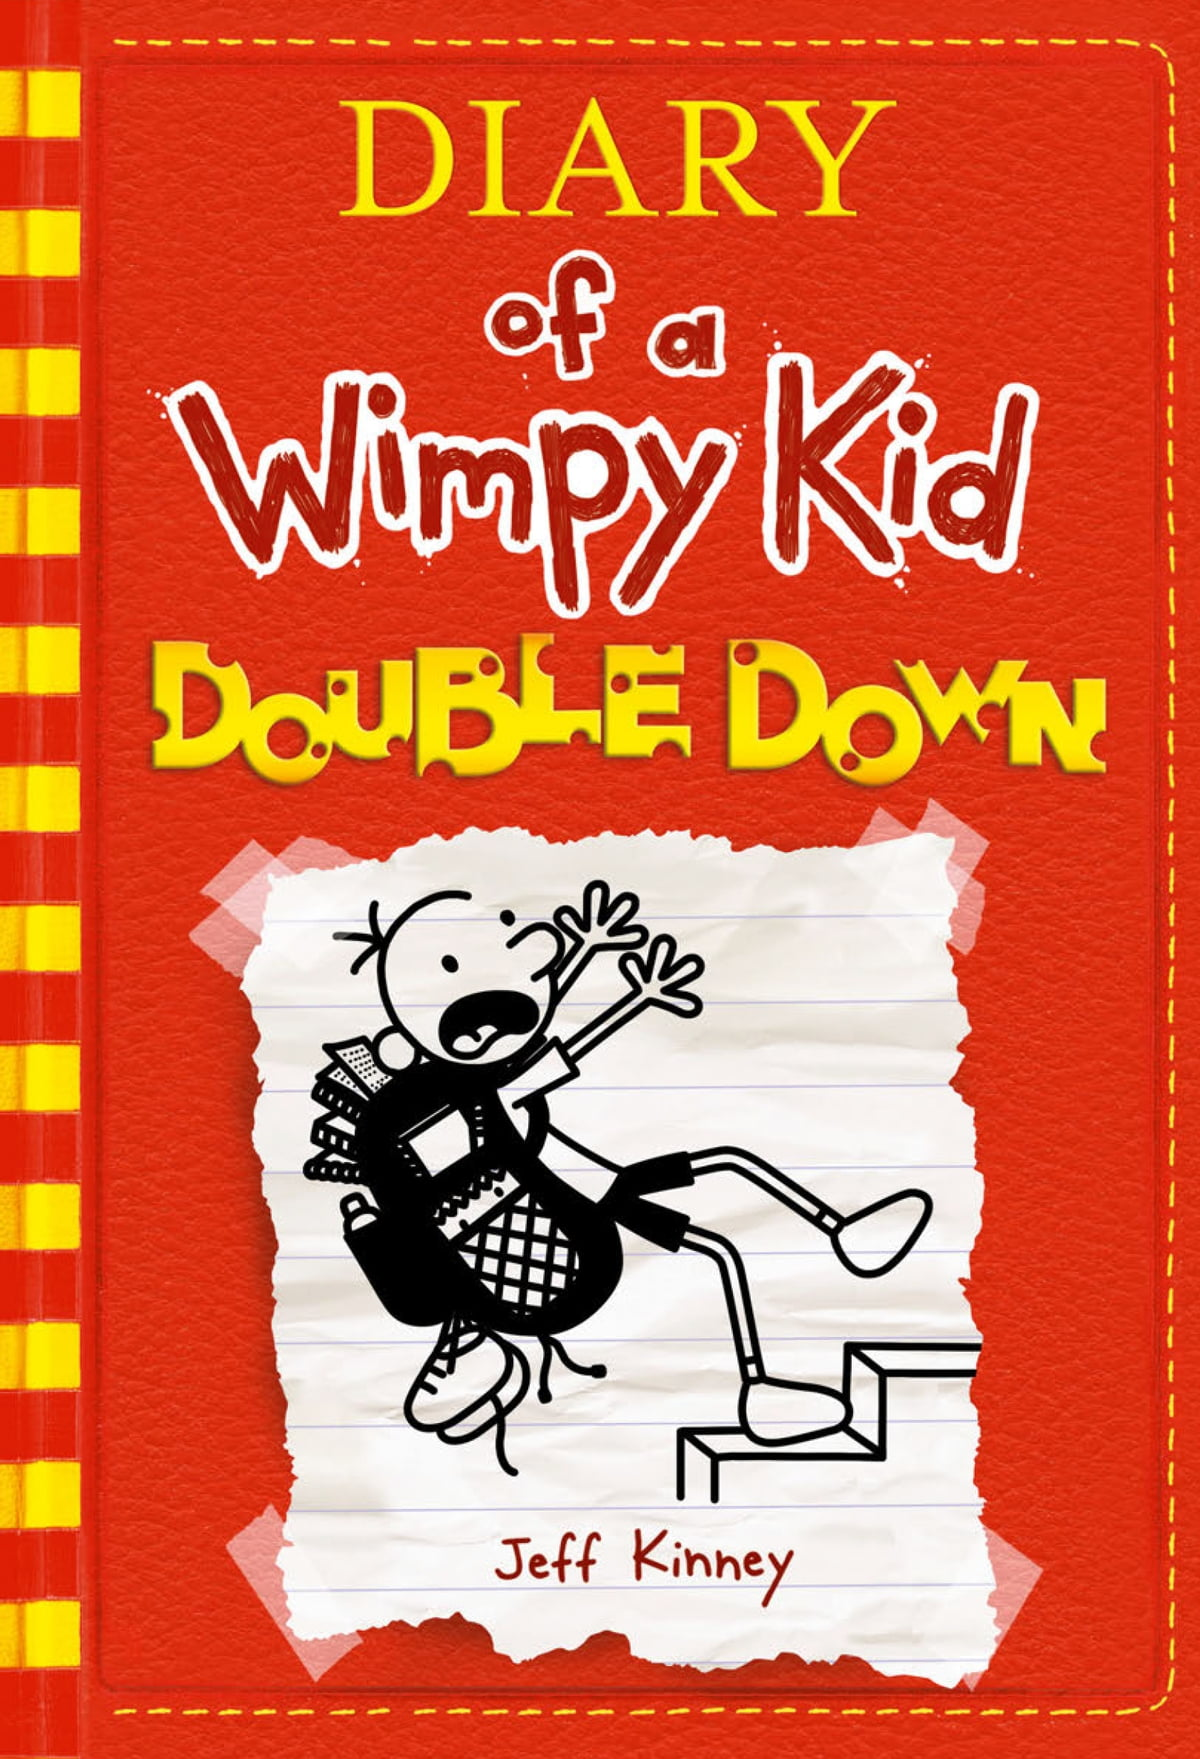 Double Down (Diary of a Wimpy Kid #11) eBook by Jeff Kinney | Rakuten Kobo